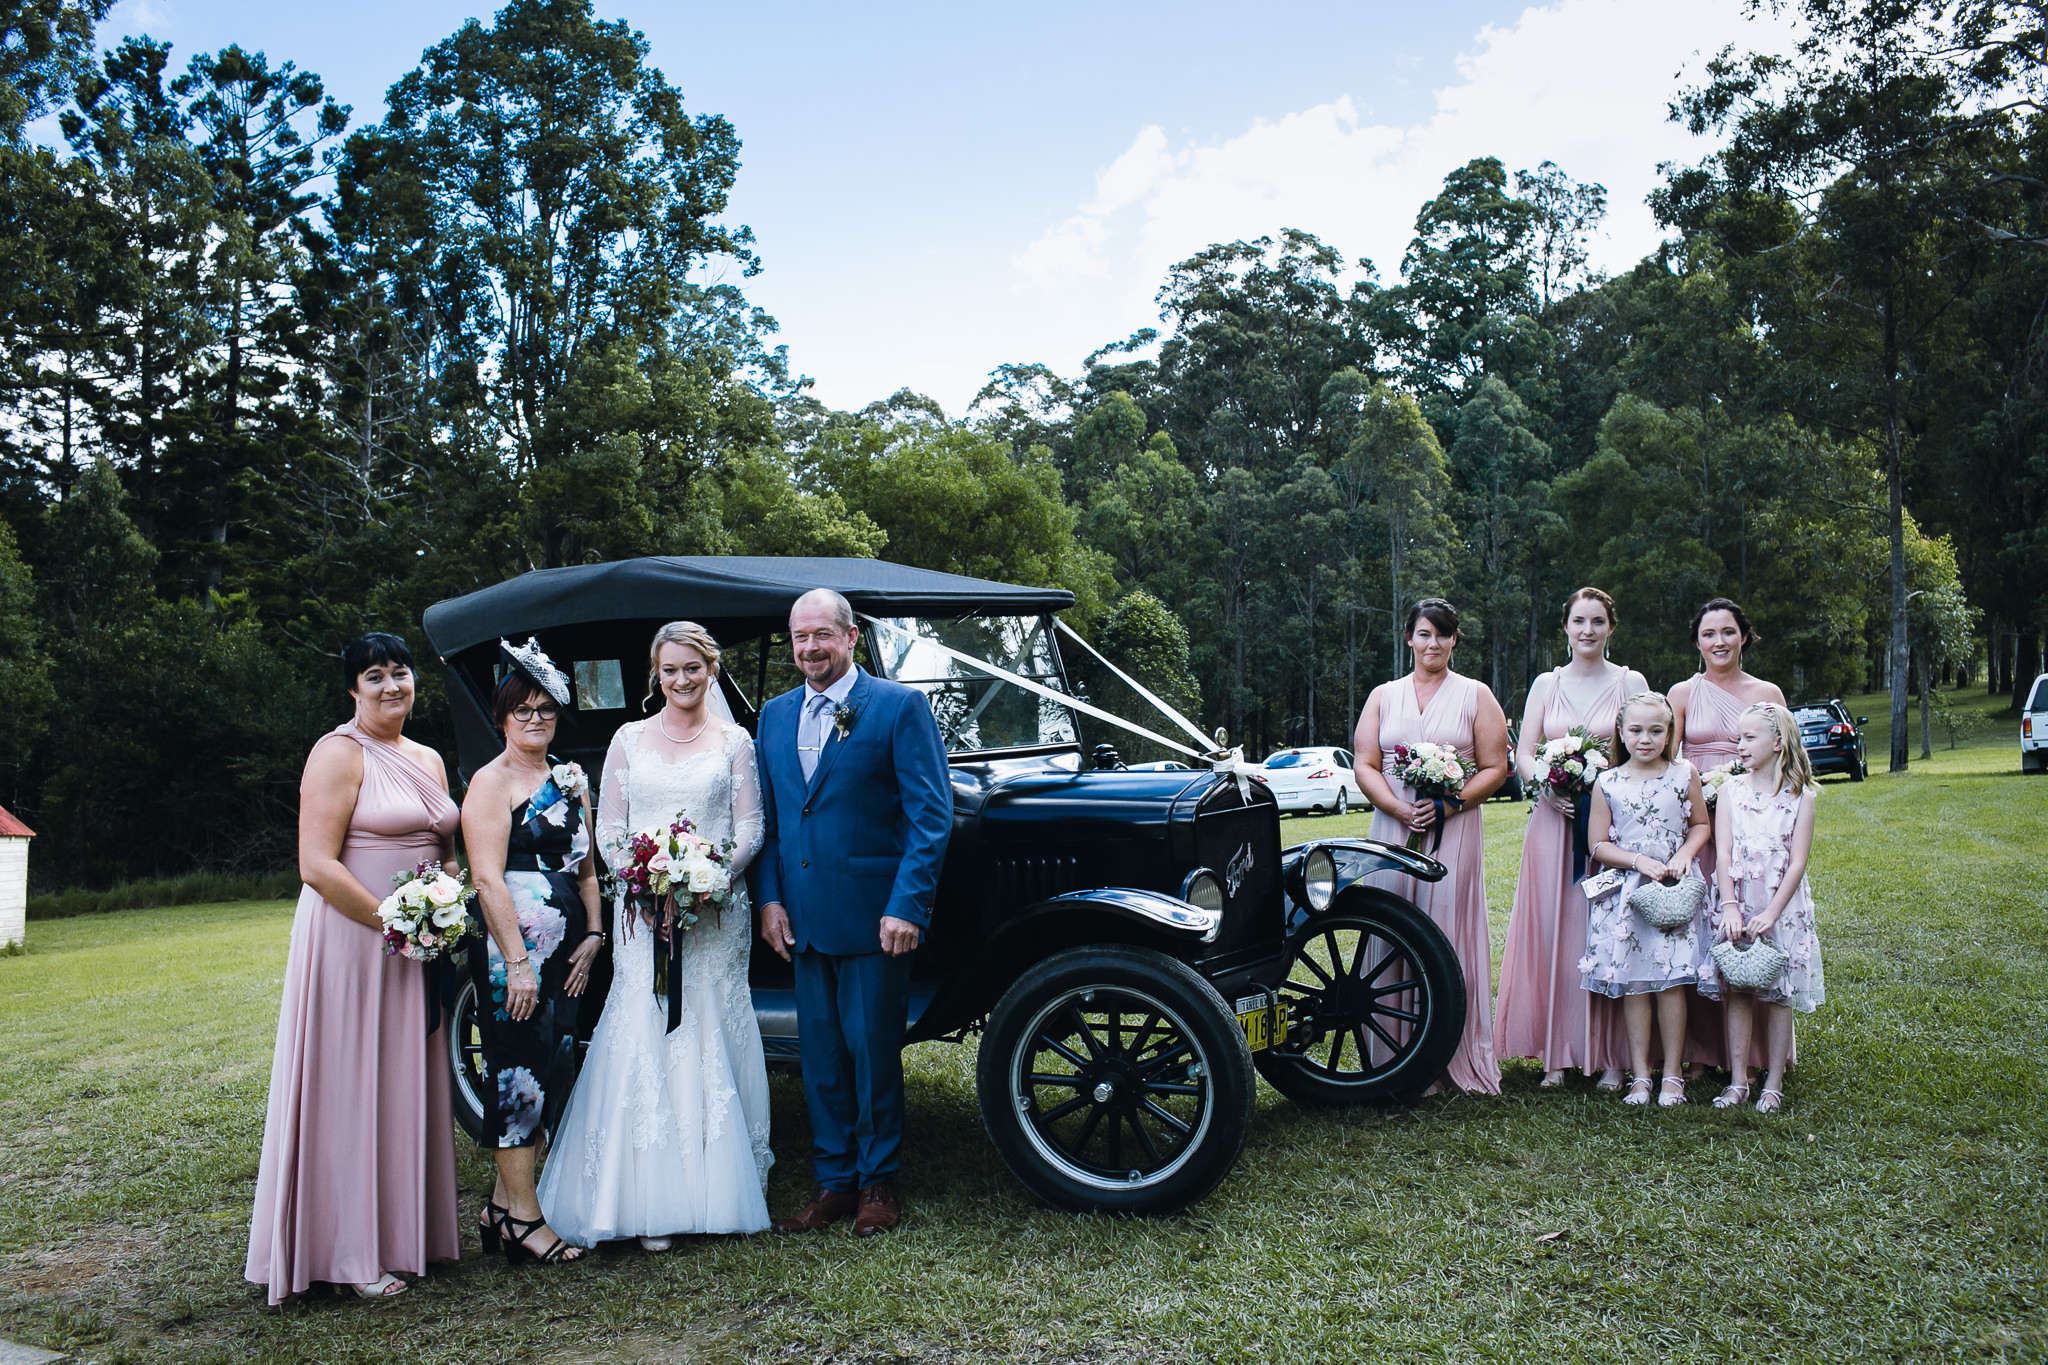 A Vintage Wedding in my Ford Model T